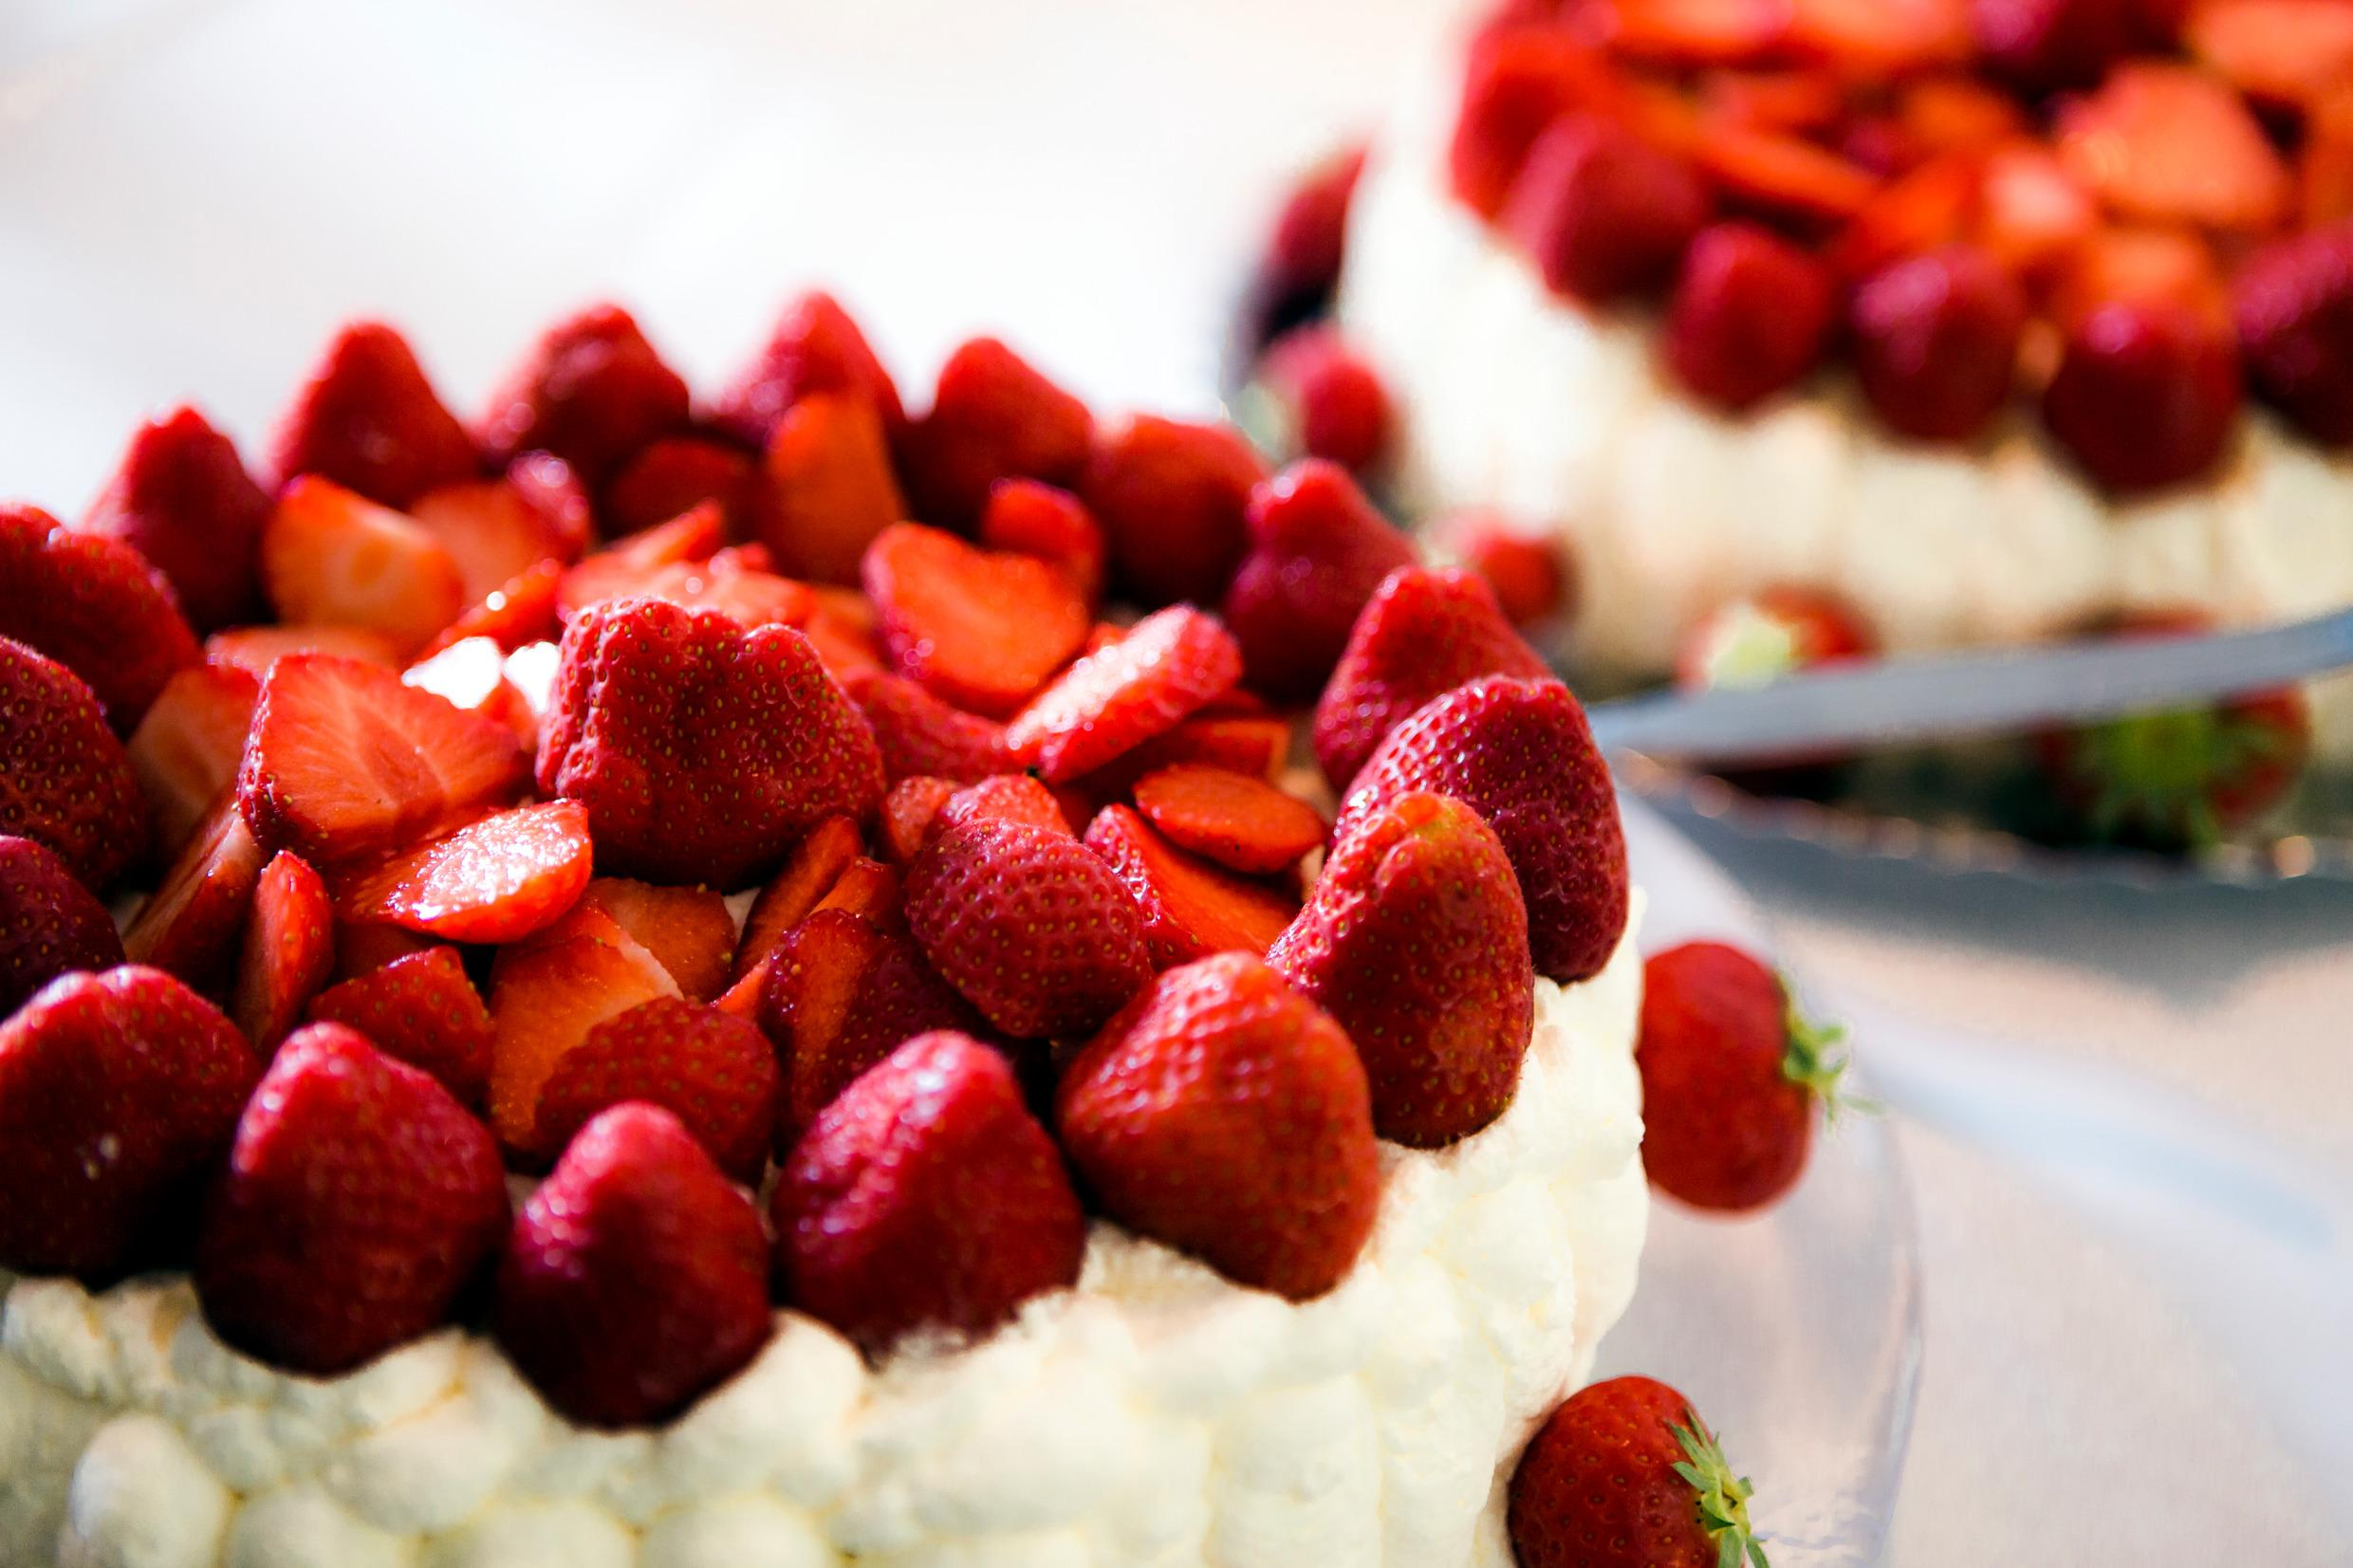 Tremendous Strawberry Cake And The Taste Of Swedish Summer Visit Sweden Funny Birthday Cards Online Barepcheapnameinfo